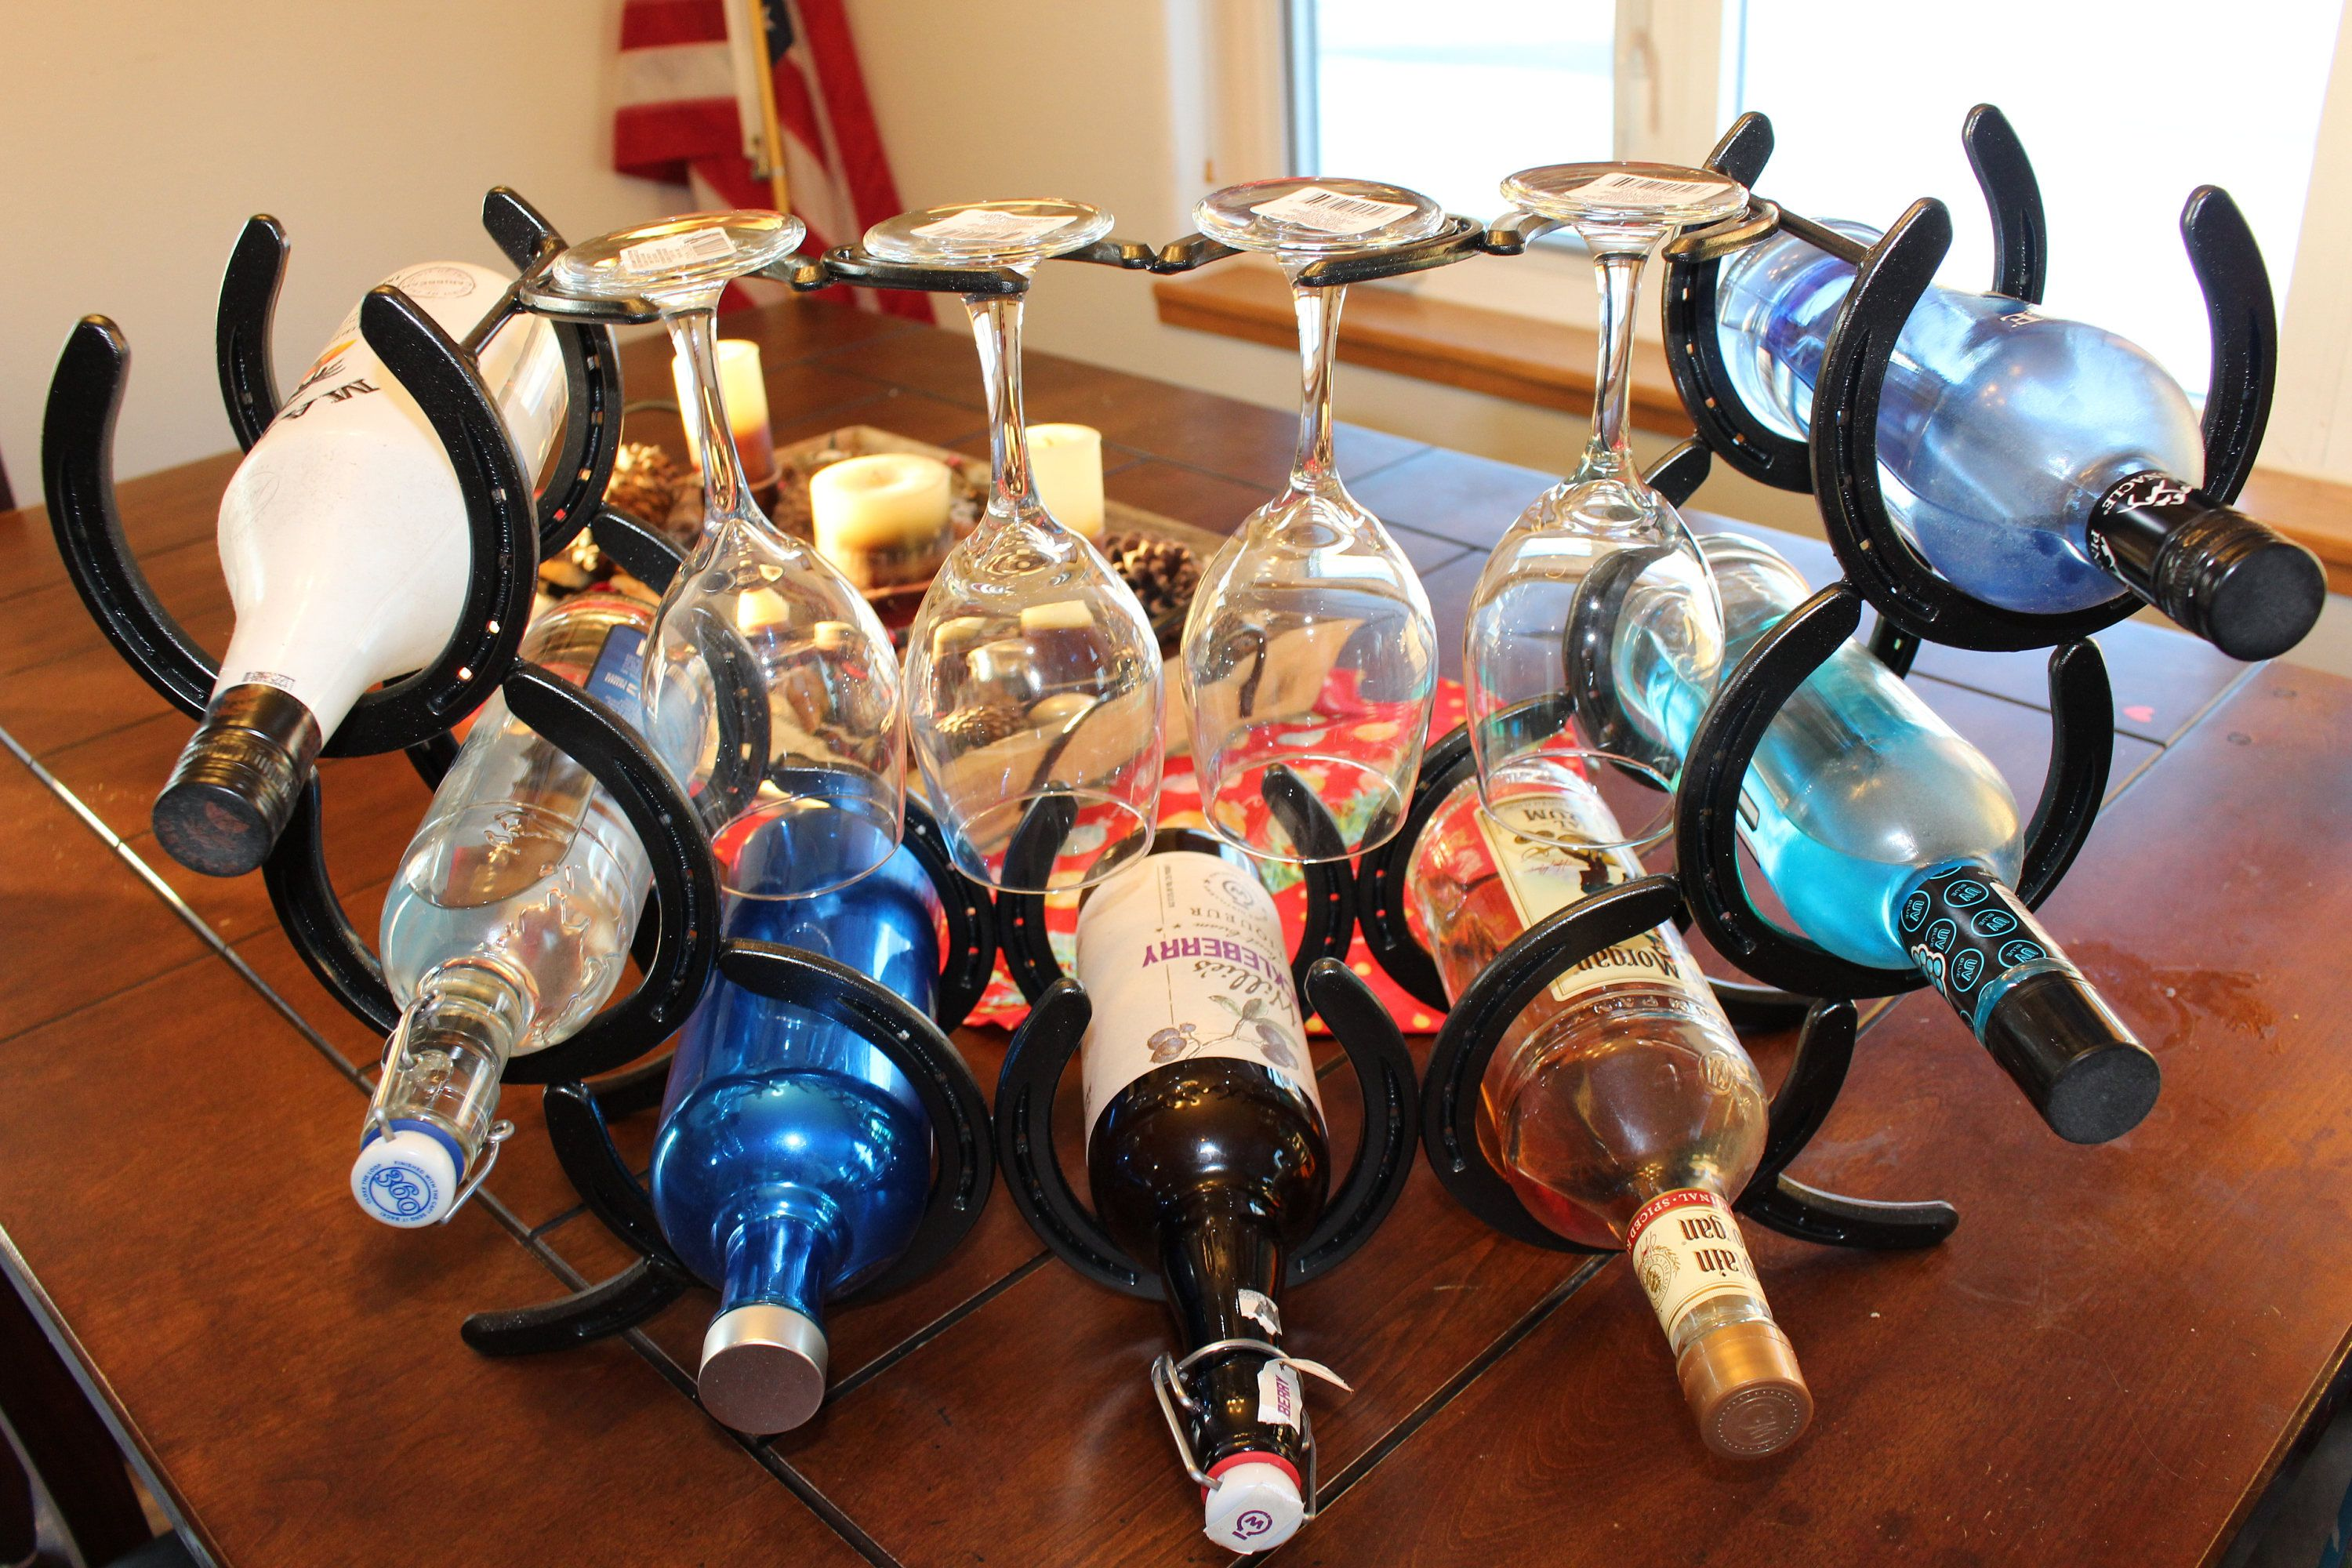 Horseshoe Wine rack holds four bottles and is made to go on side of cabinet.